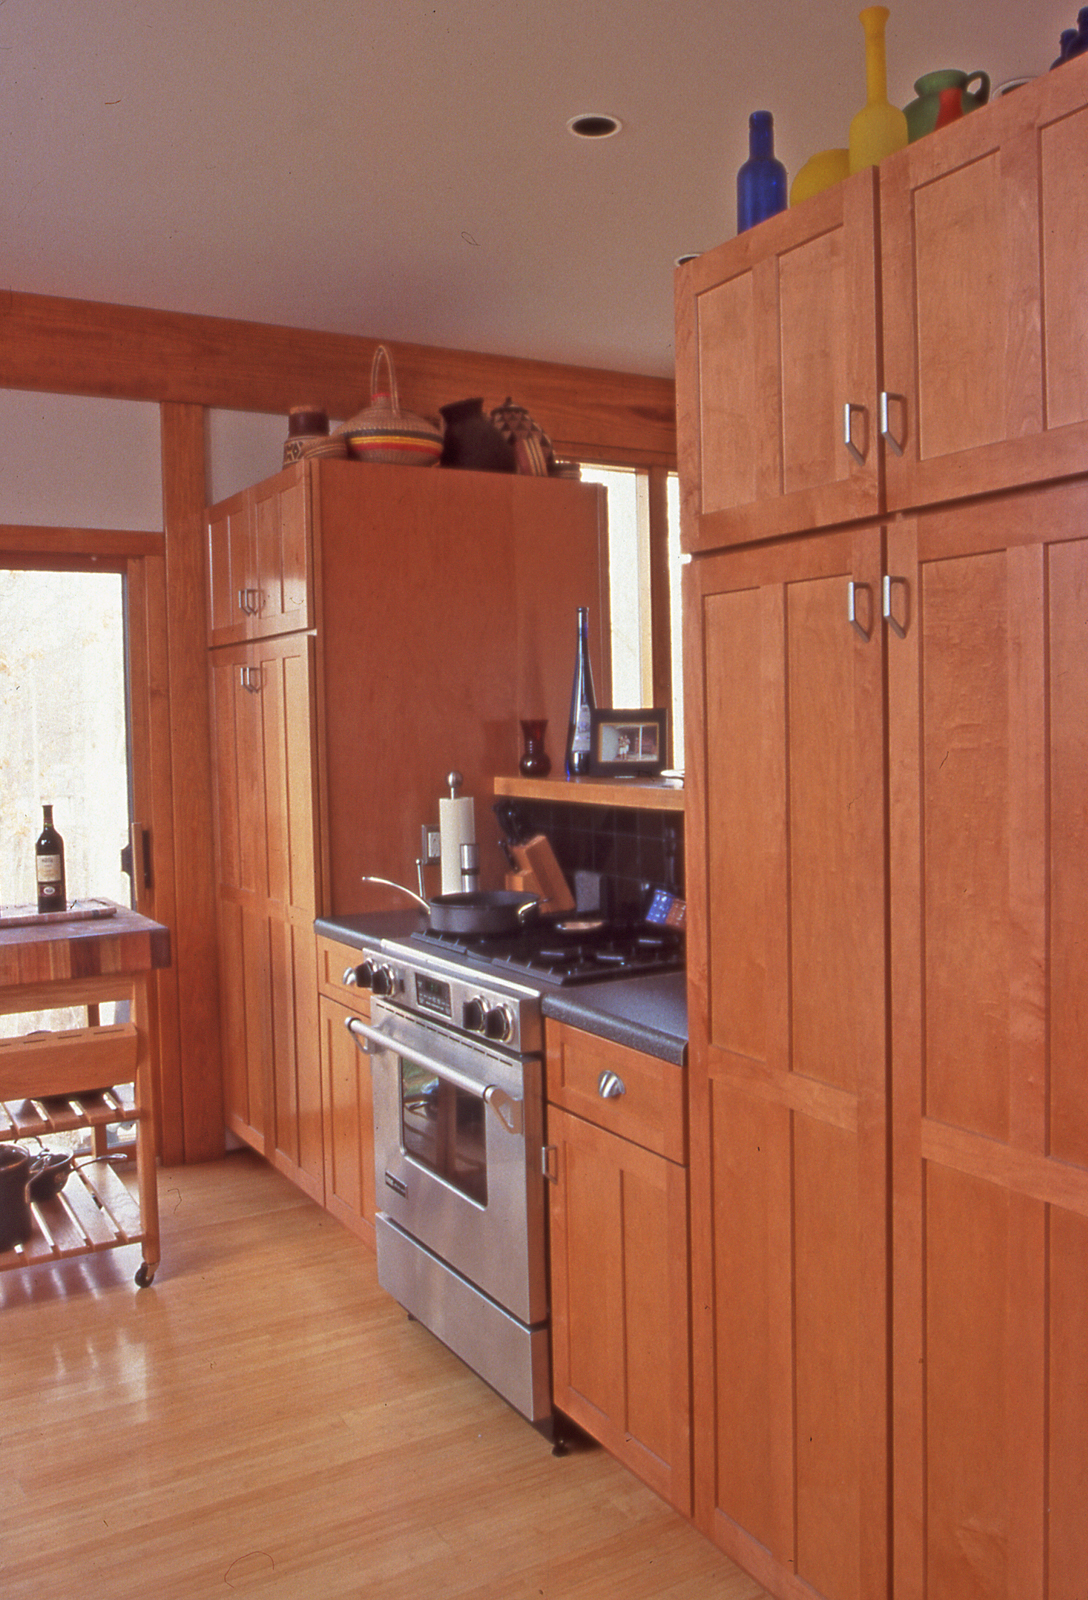 Interior-kitchen-right.jpg